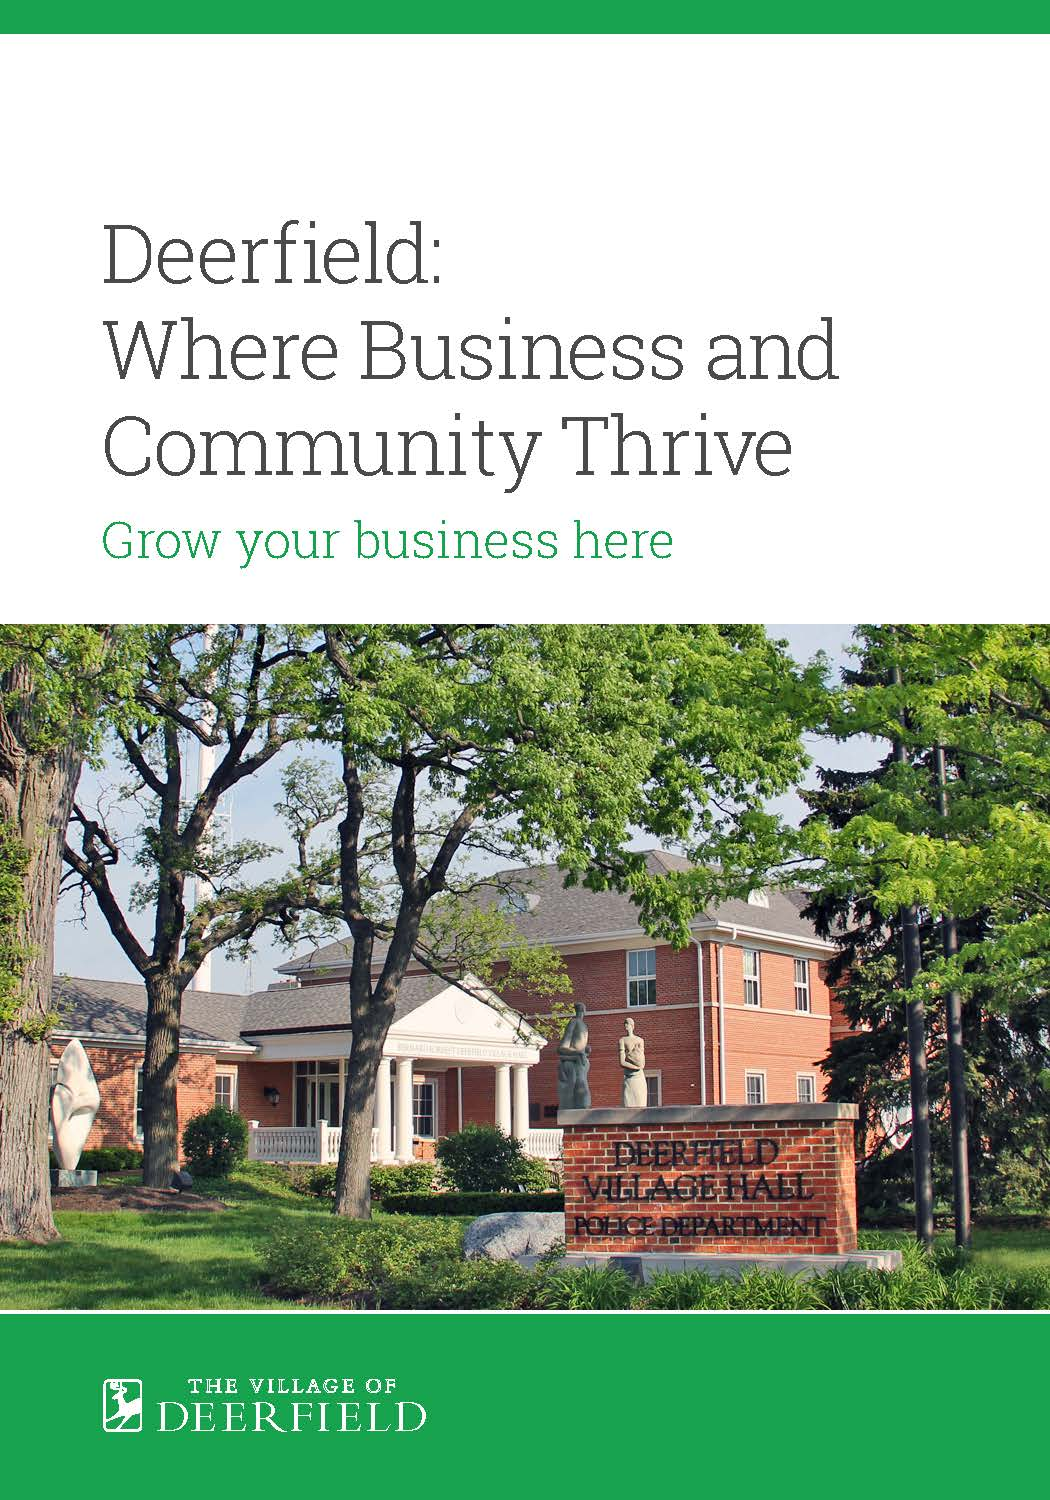 Why Locate Your Business in Deerfield